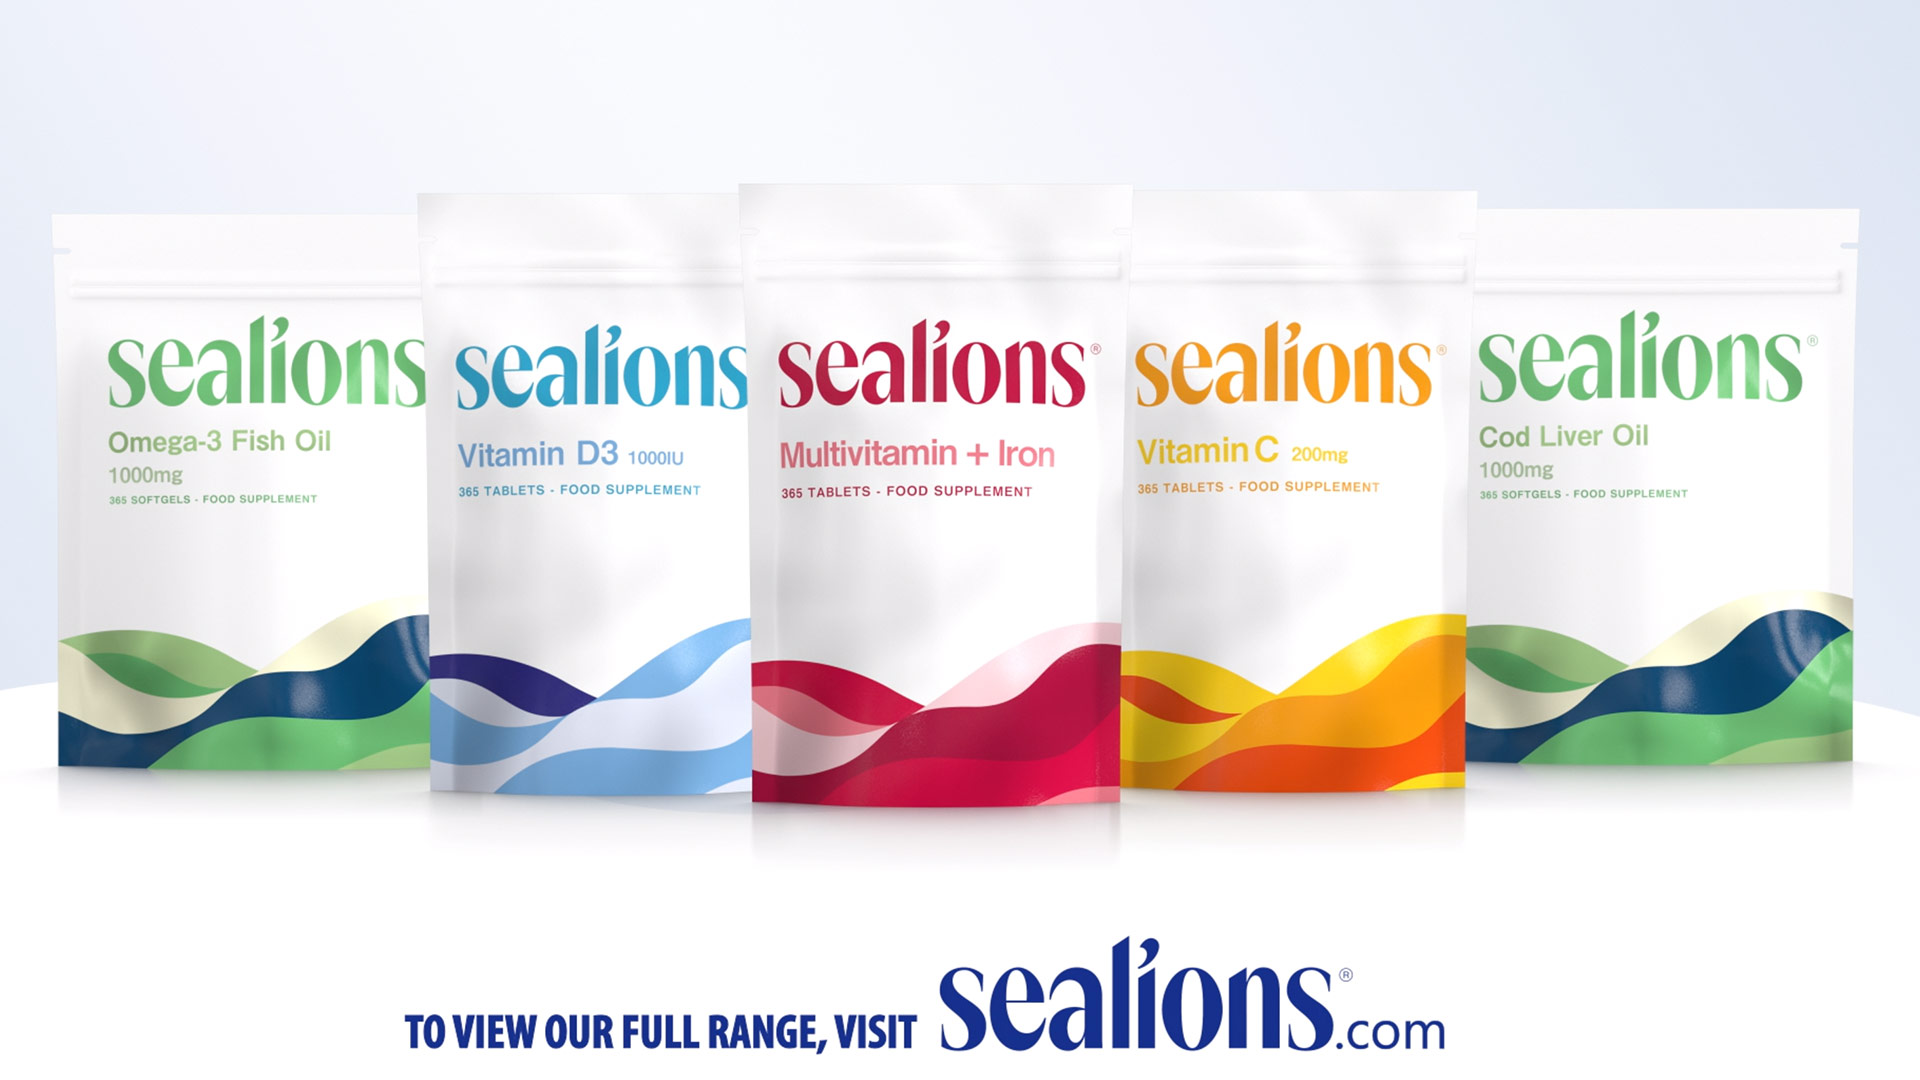 Sealions Product project image